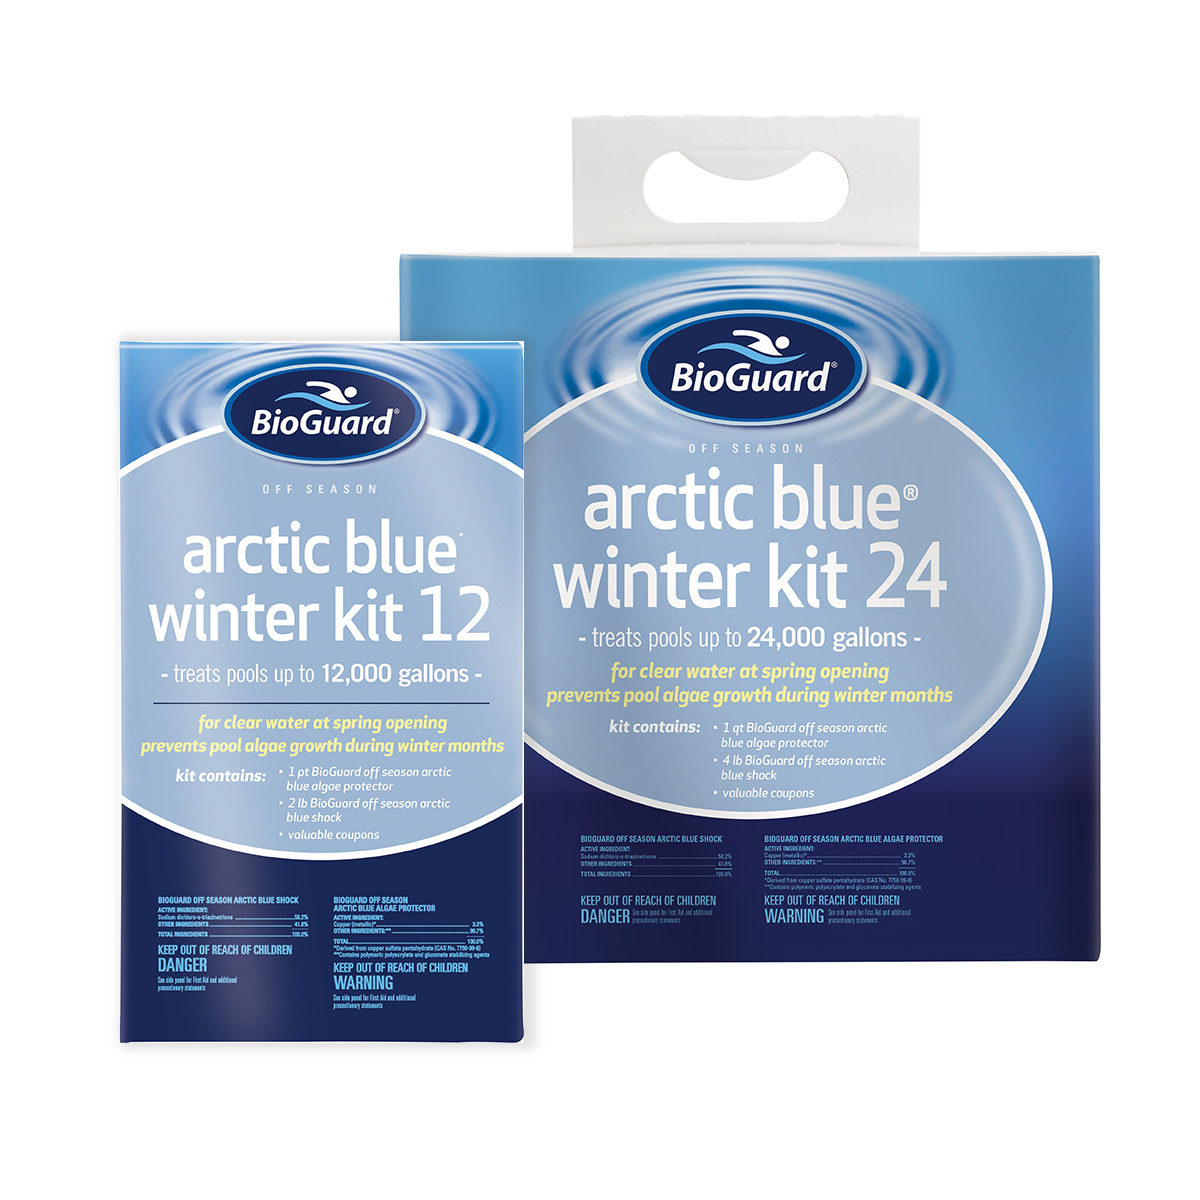 Arctic blue winter kits garden spas pool for Garden spas pool germantown tn